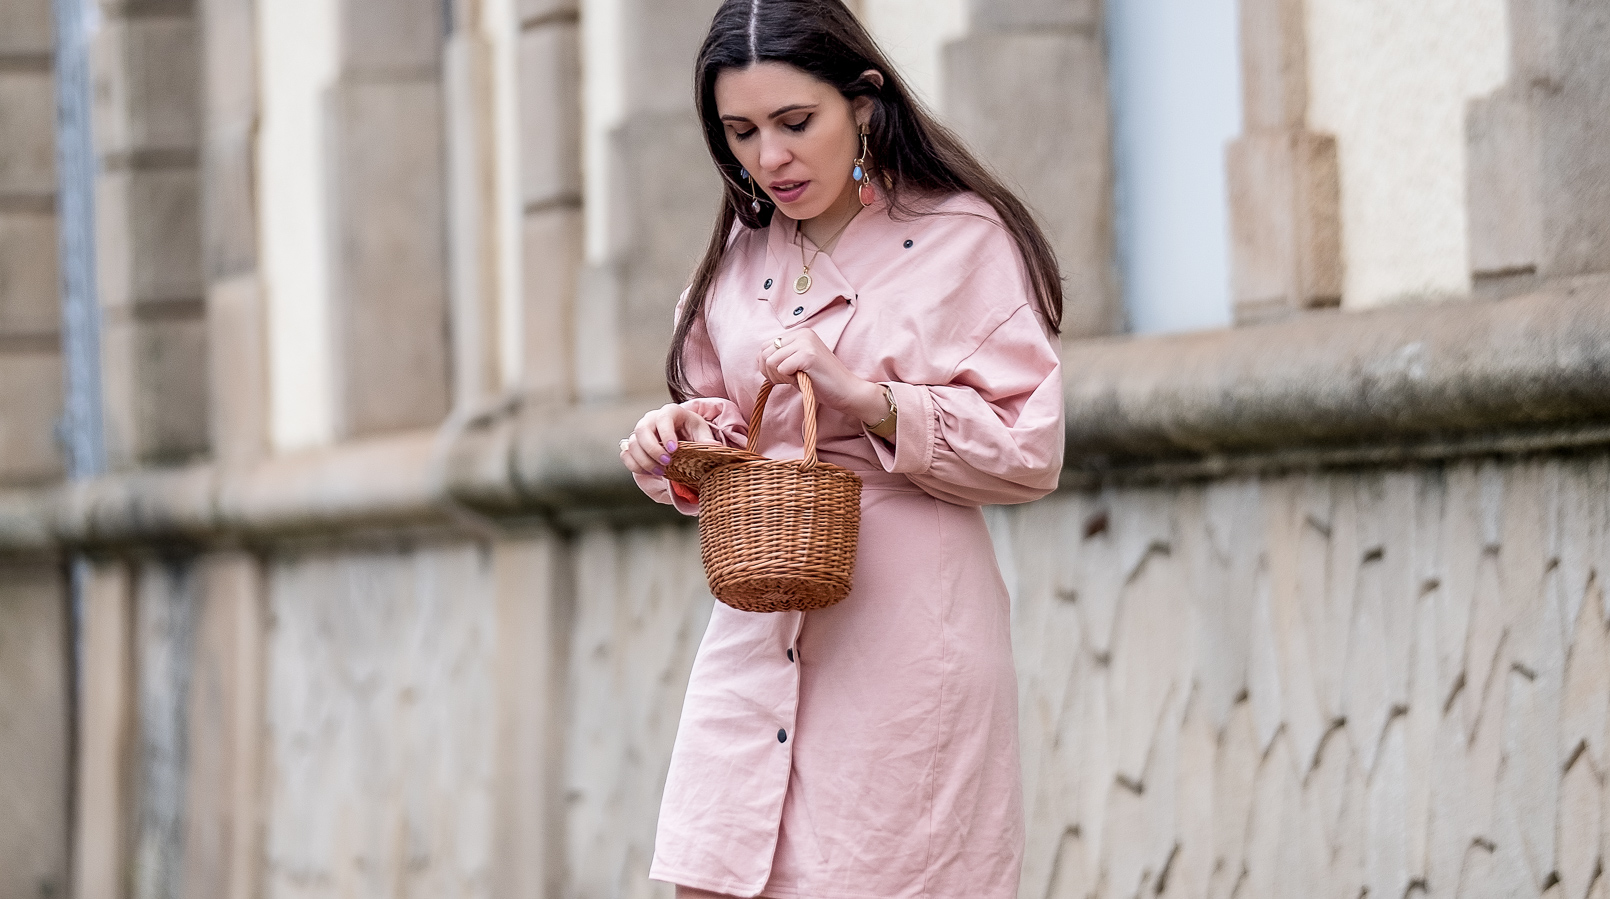 Le Fashionaire pale pink asos dress gold coin old necklace la petite sardine straw bag bold colorful earrings mango 0889F EN pale pink asos dress gold coin old necklace la petite sardine straw bag bold colorful earrings mango 0889F EN